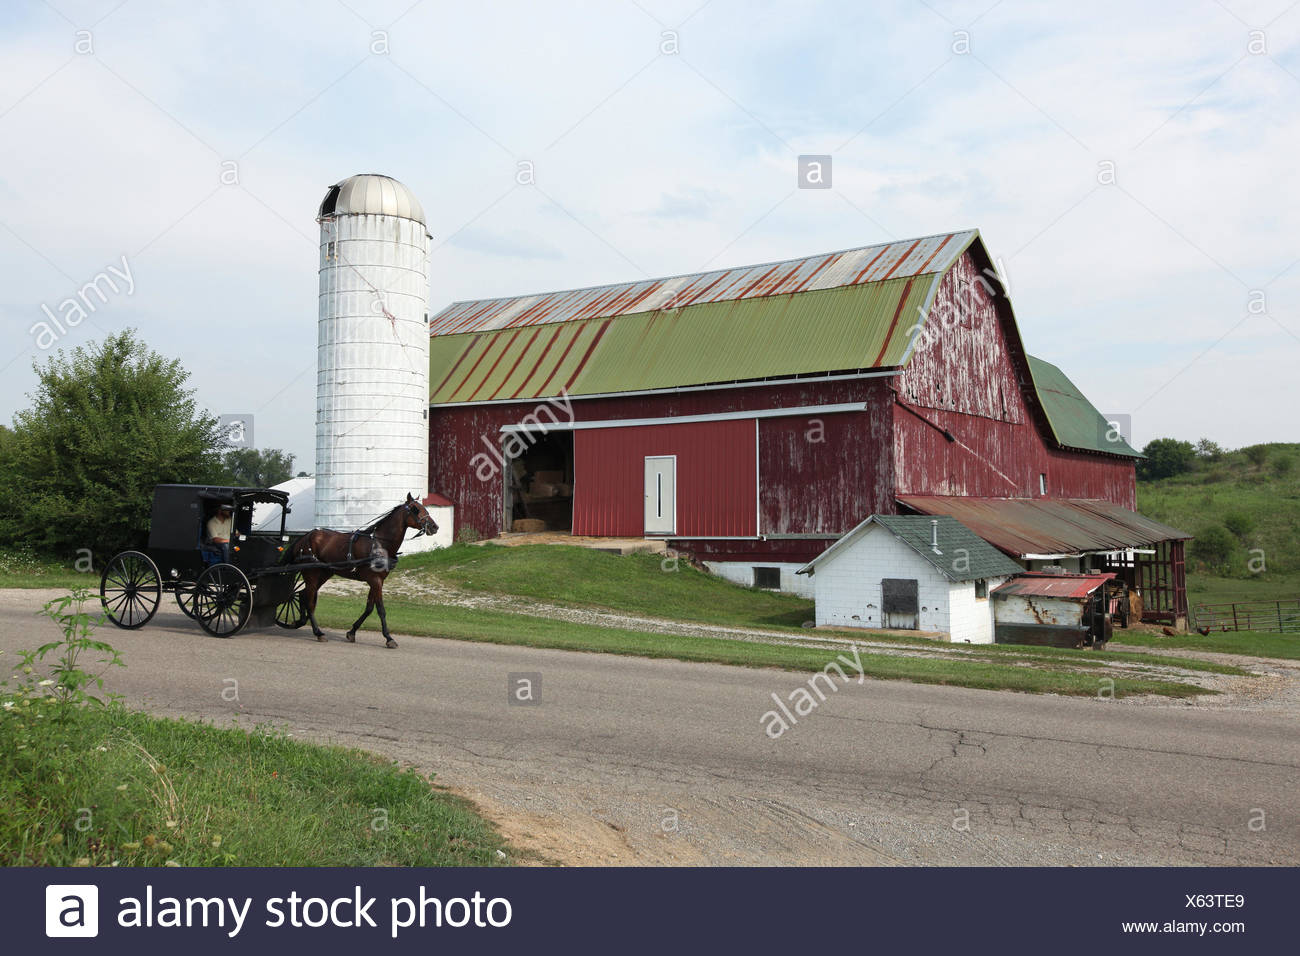 Amish people barn stock photos amish people barn stock images in rural farmland an amish man drives a horse drawn buggy past a barn biocorpaavc Images